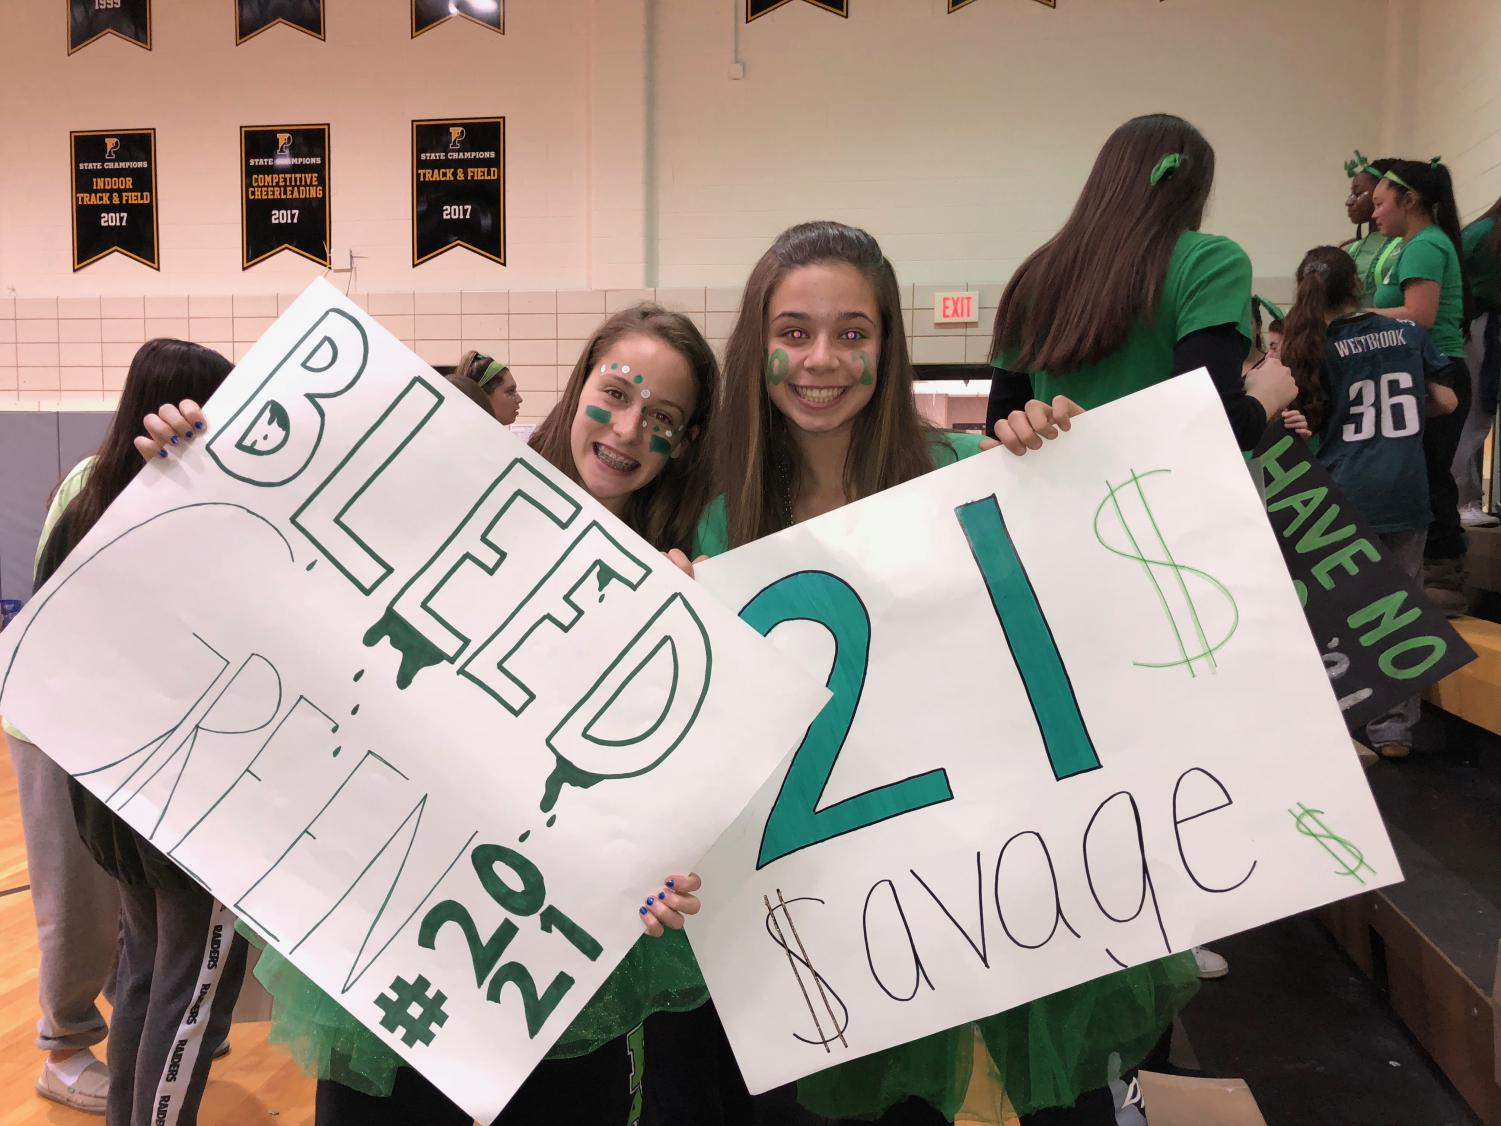 Erin Callaghan (left) celebrating the color wars day in green.